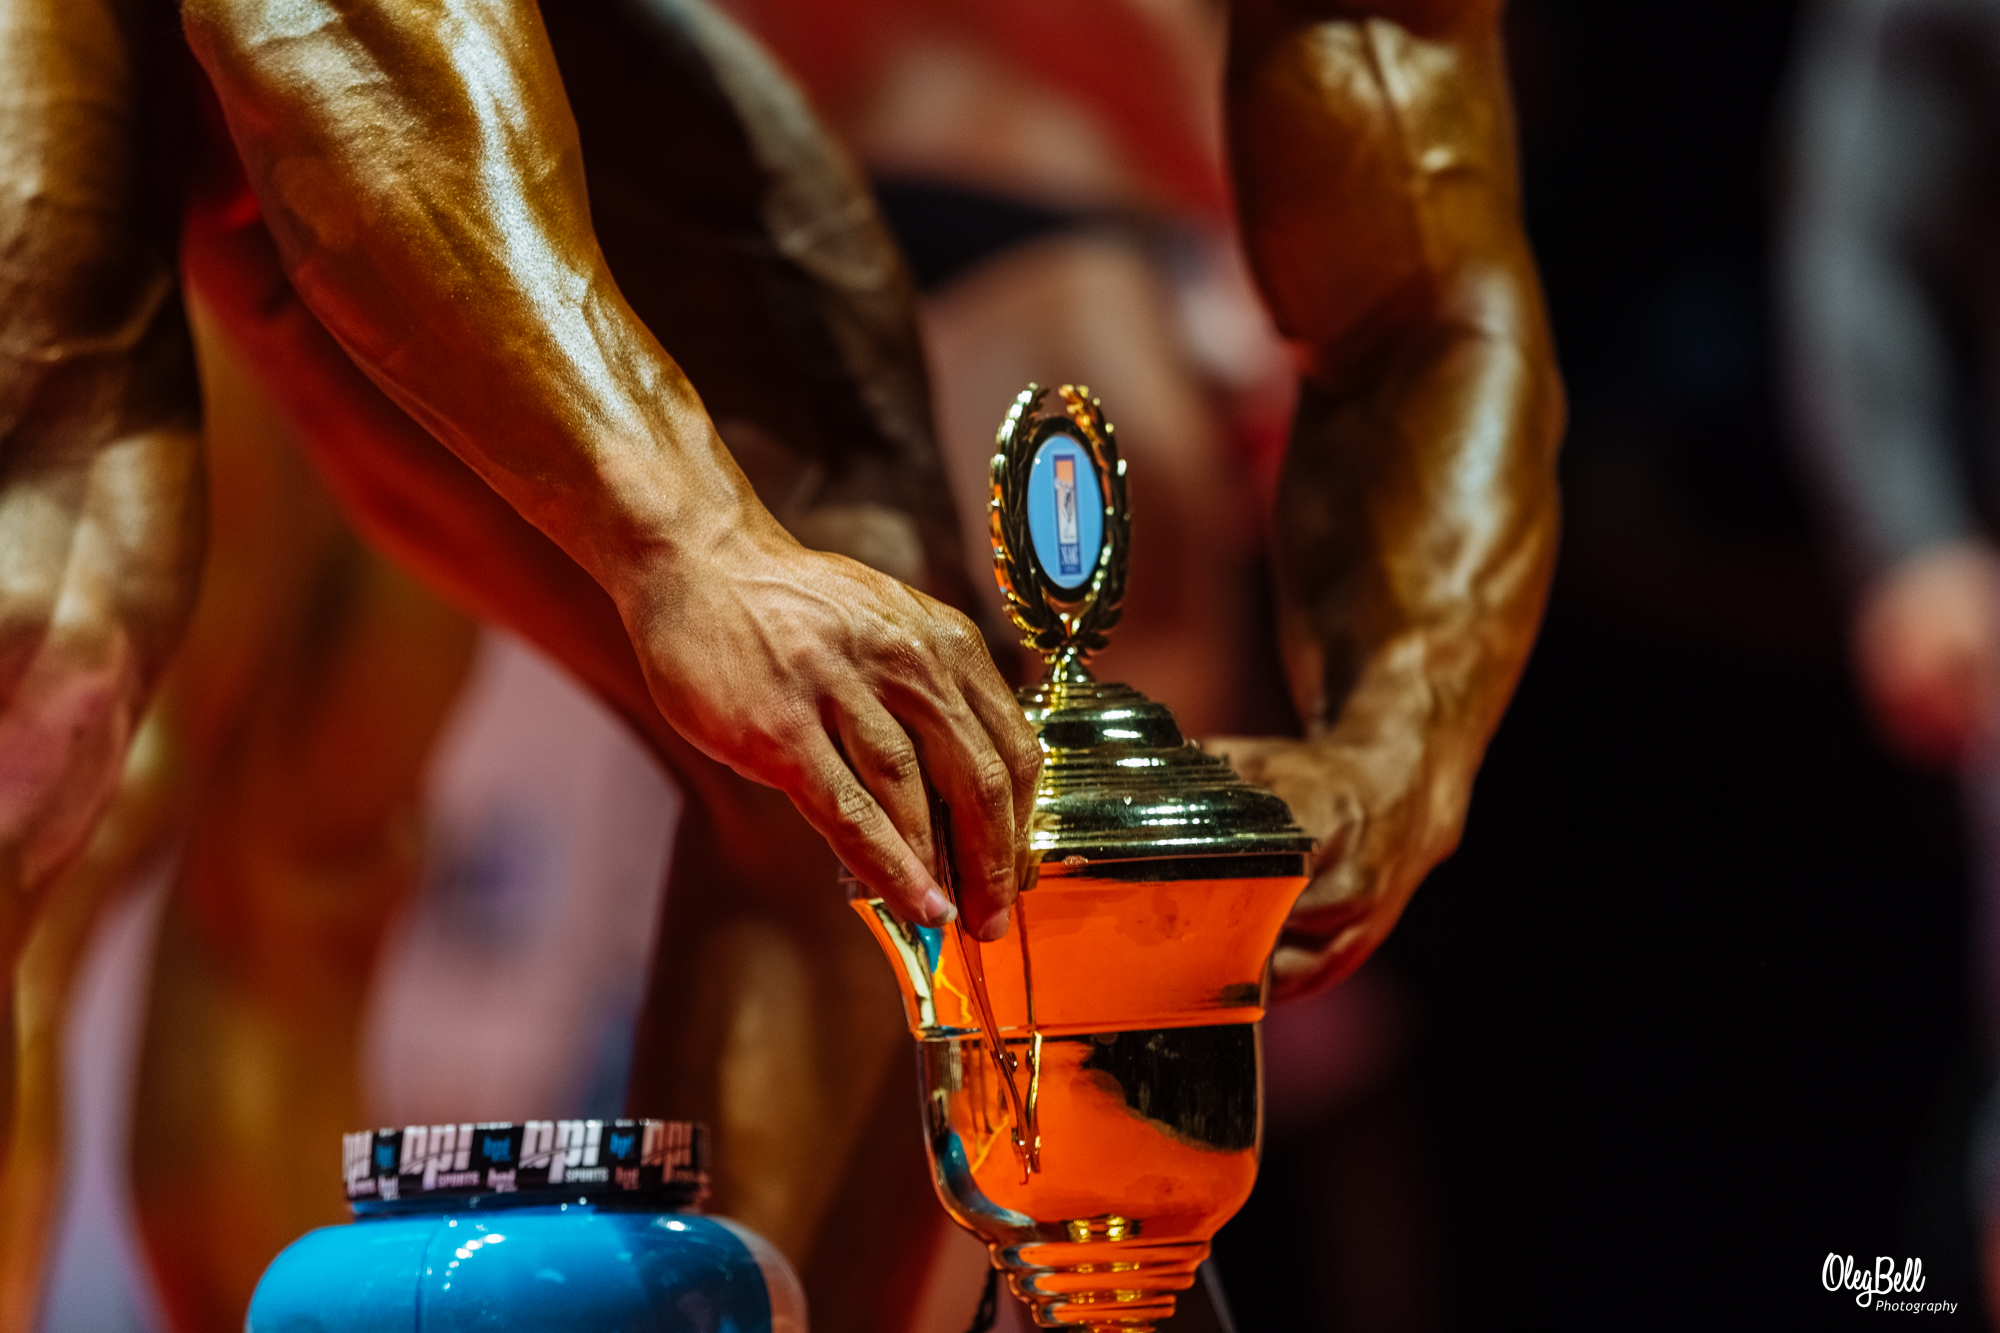 NICOLE_BODYBUILDING_COMPETITIONS_0259.jpg